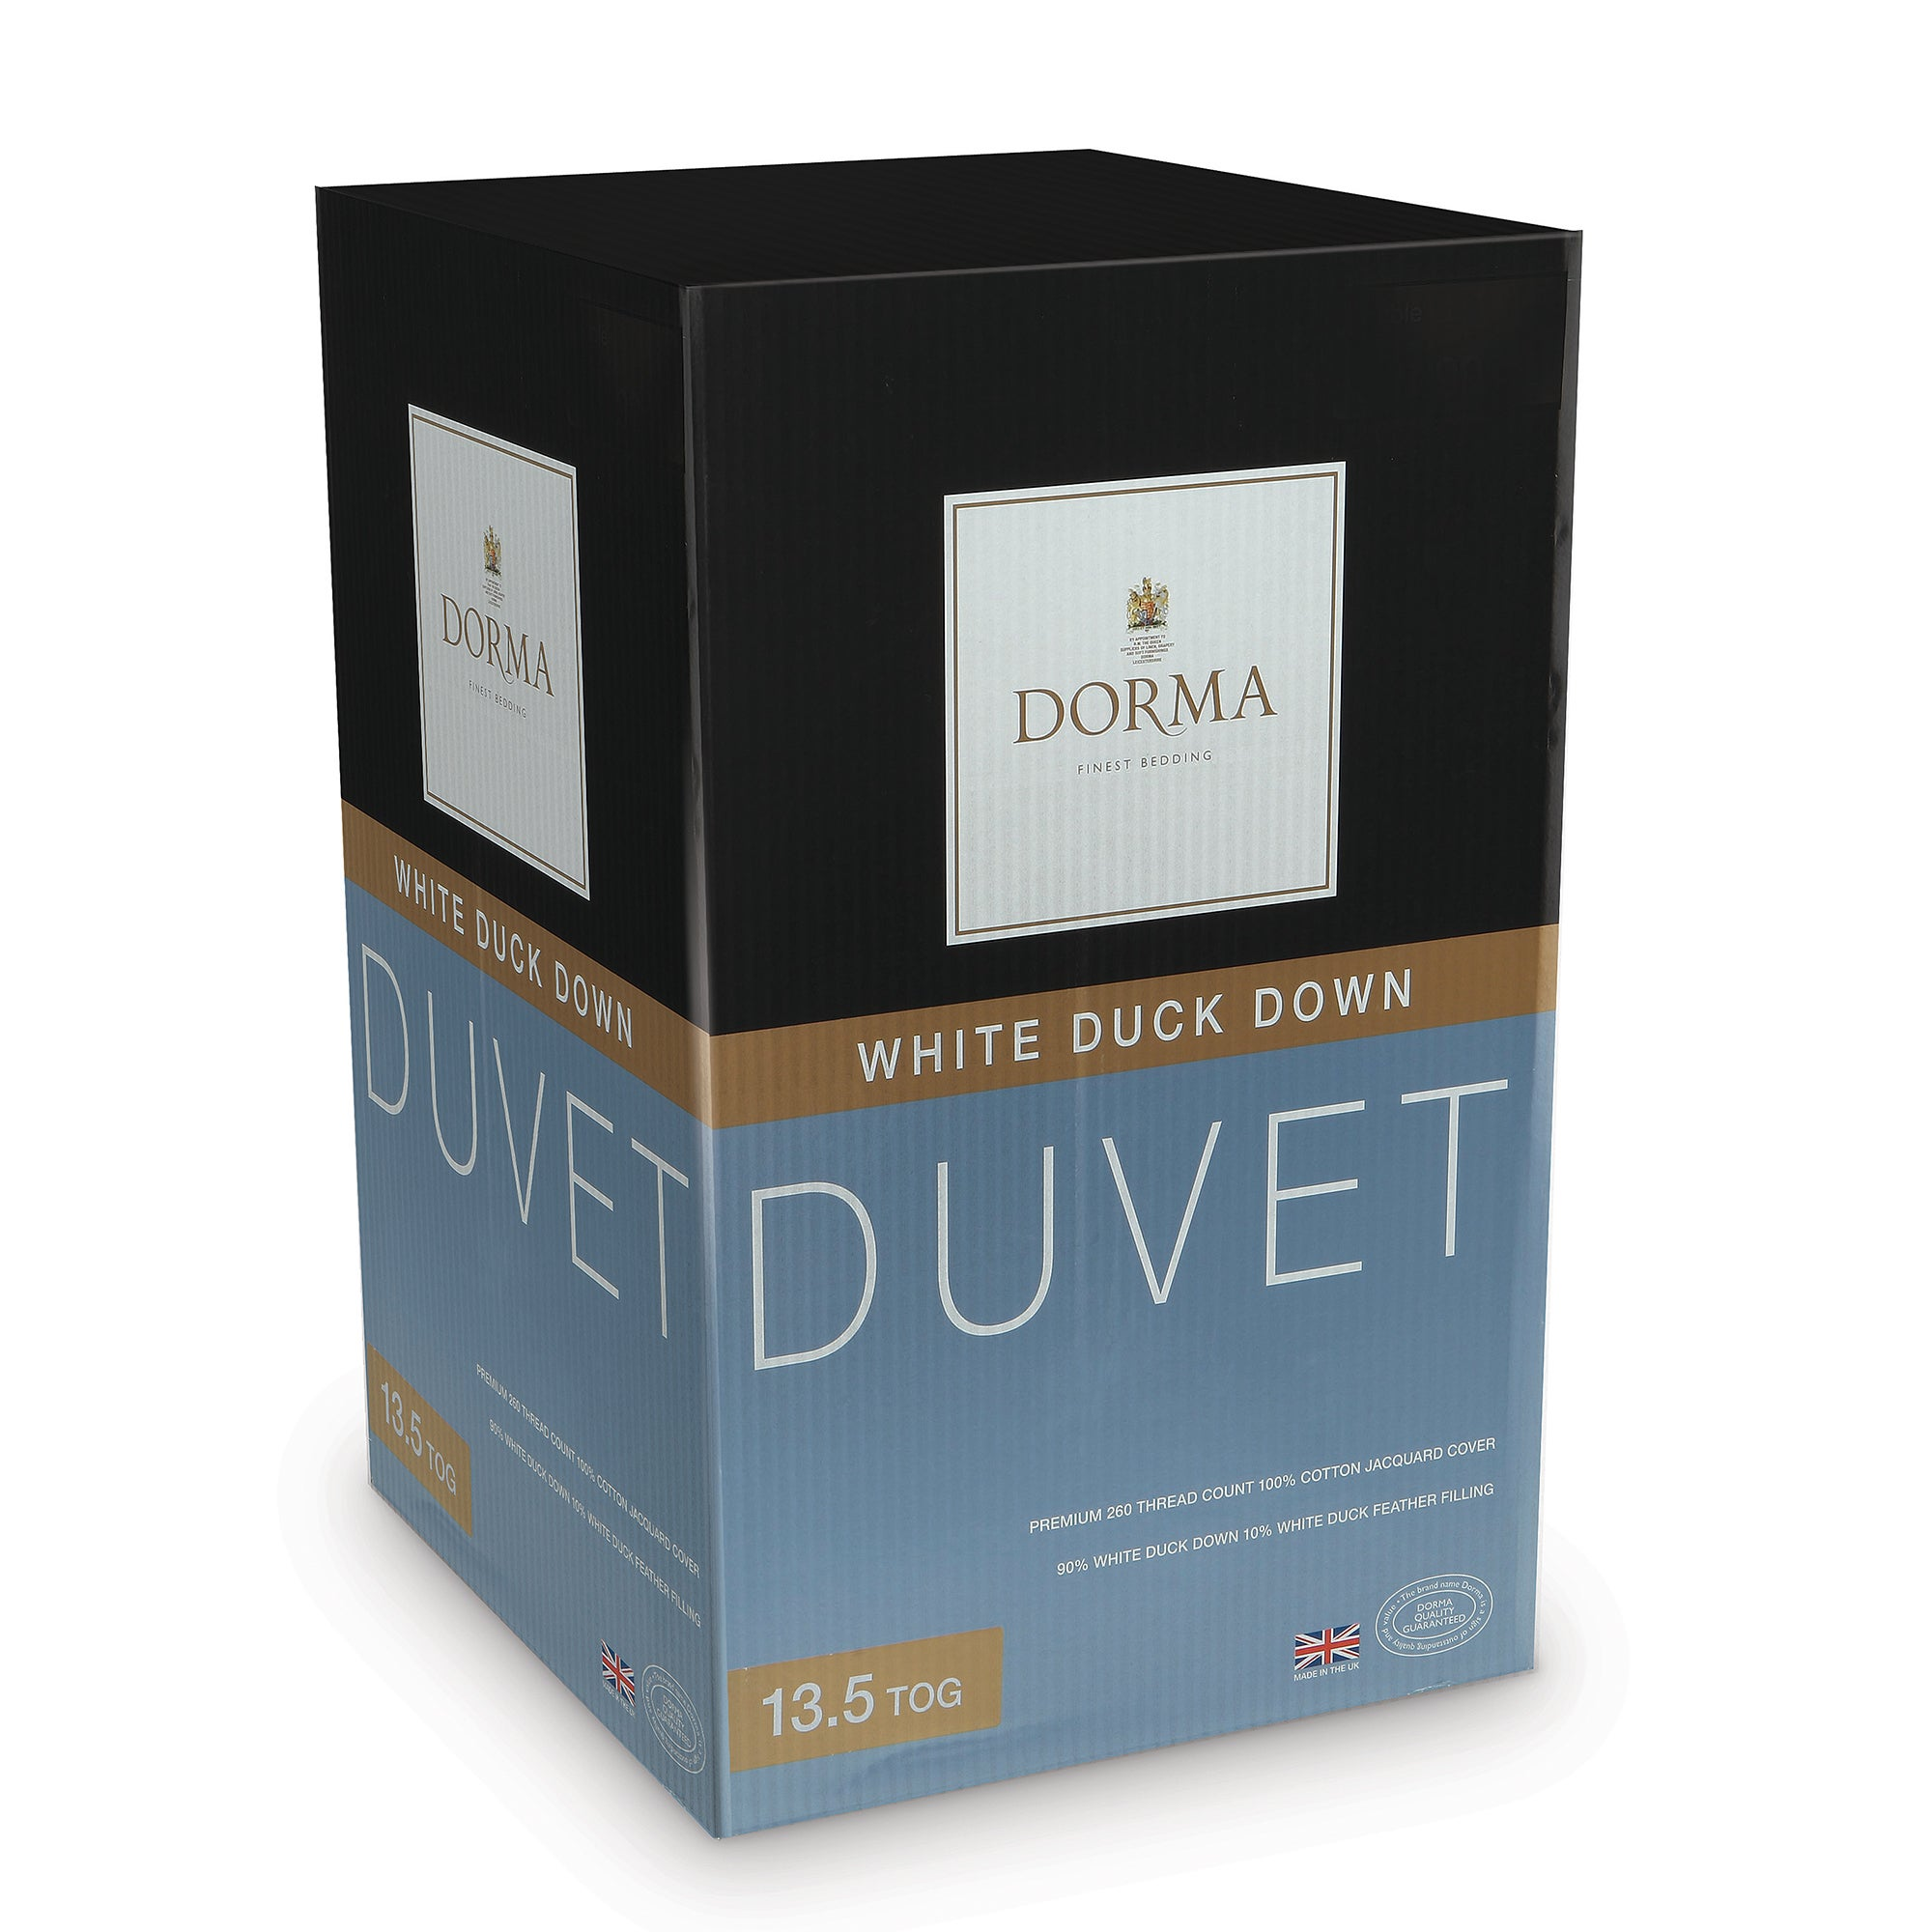 Dorma White Duck Down 13.5 Tog Duvet